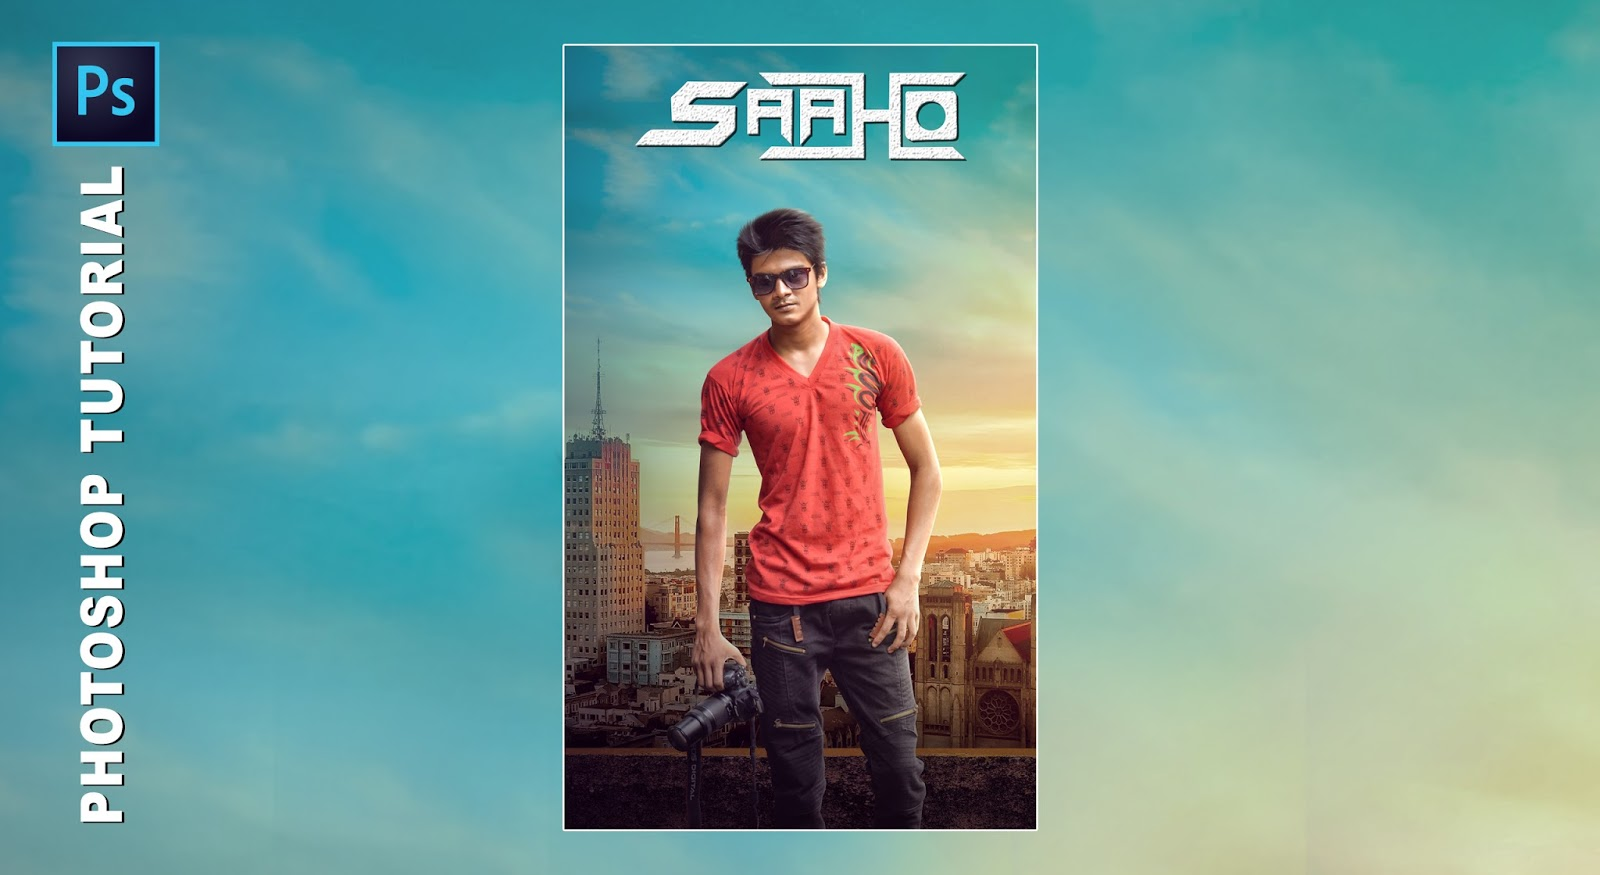 Saaho fantasy movie poster making in photoshop saaho photoshop saaho fantasy movie poster making in photoshop saaho photoshop manipulation tutorial baditri Gallery